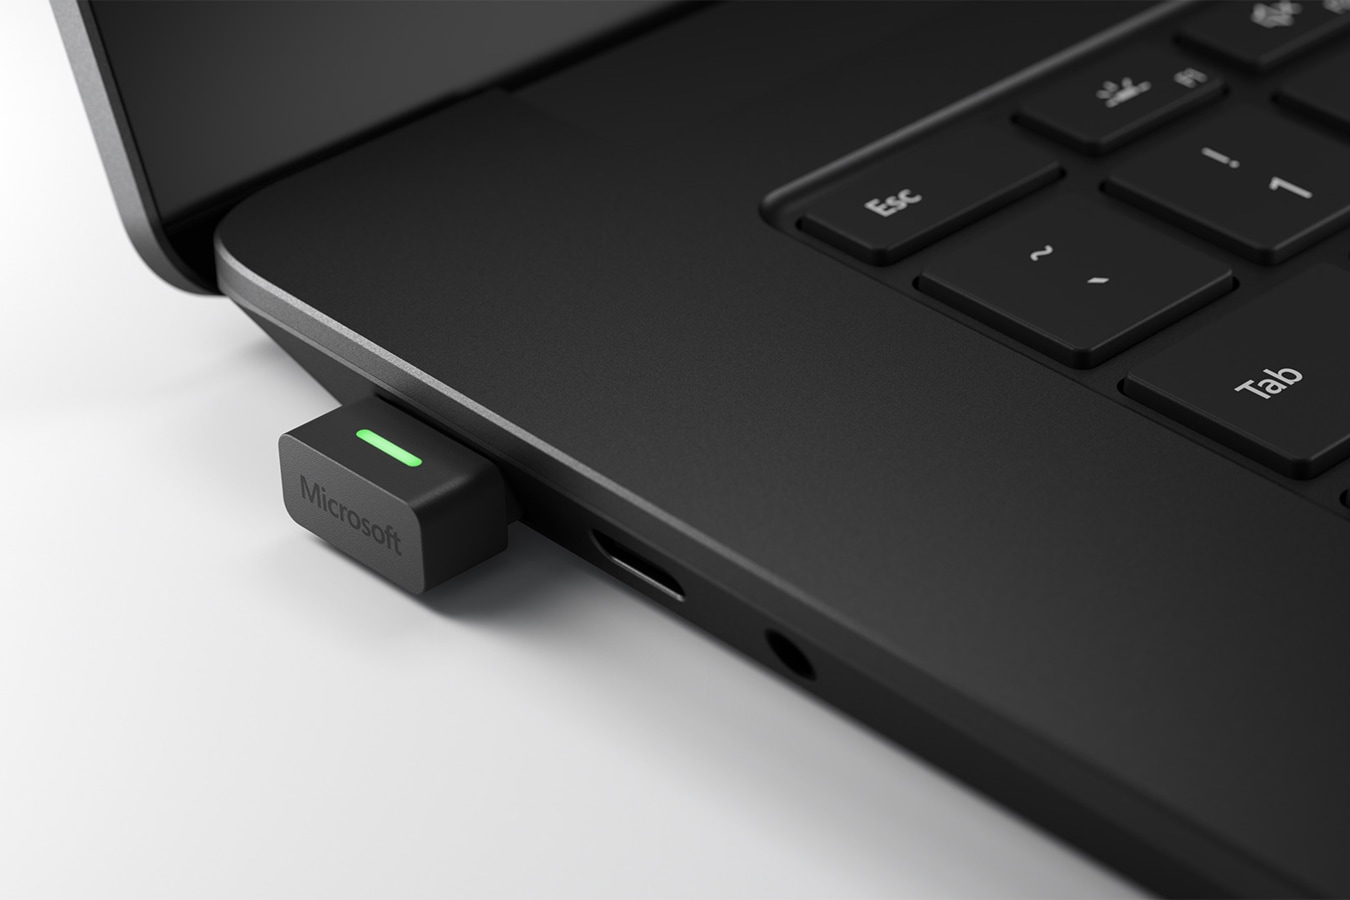 A close-up view of the USB Link connected to a Surface Pro 7+ device